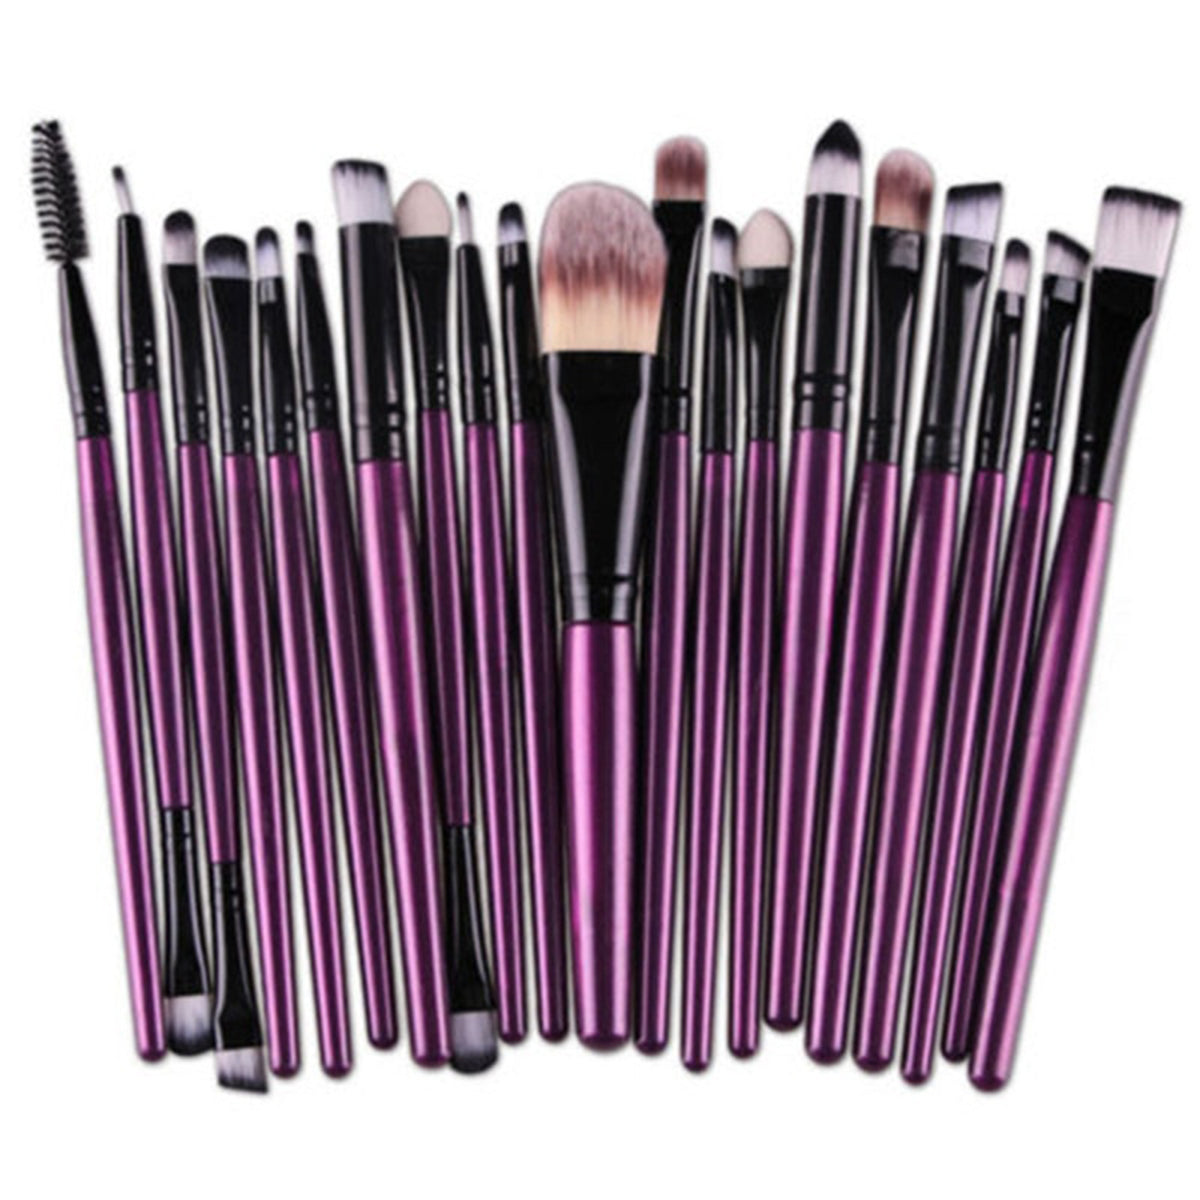 Makeup Brushes Set for Eyebrow Foundation